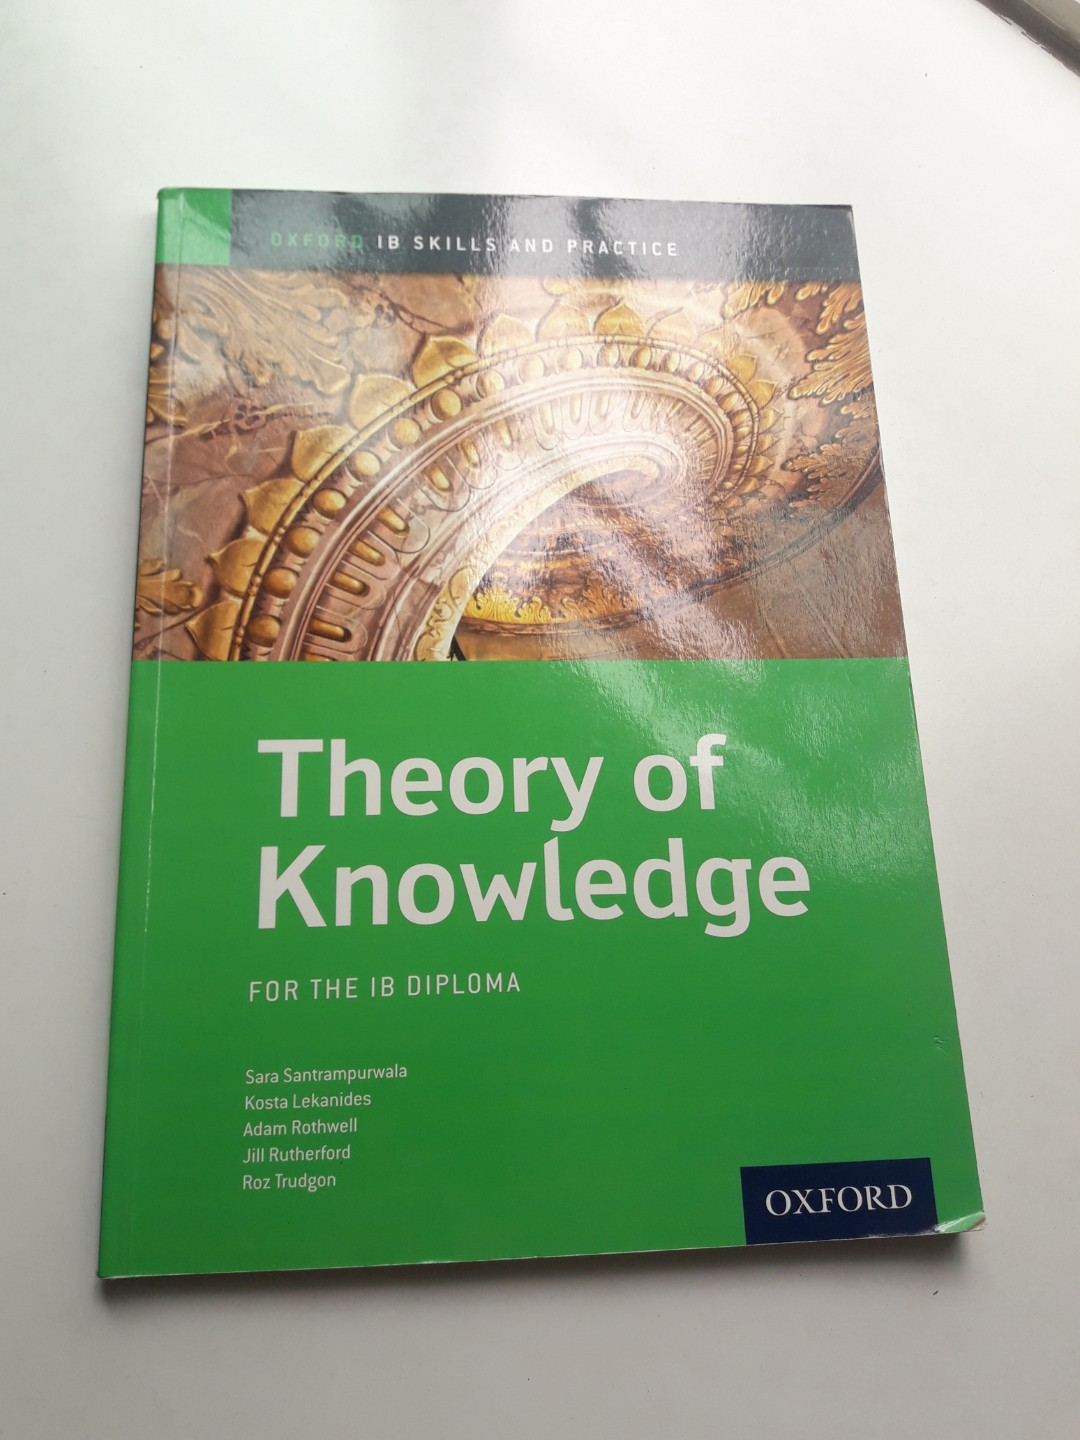 IB Theory of Knowledge Study Guide, Books & Stationery, Textbooks, Tertiary  on Carousell